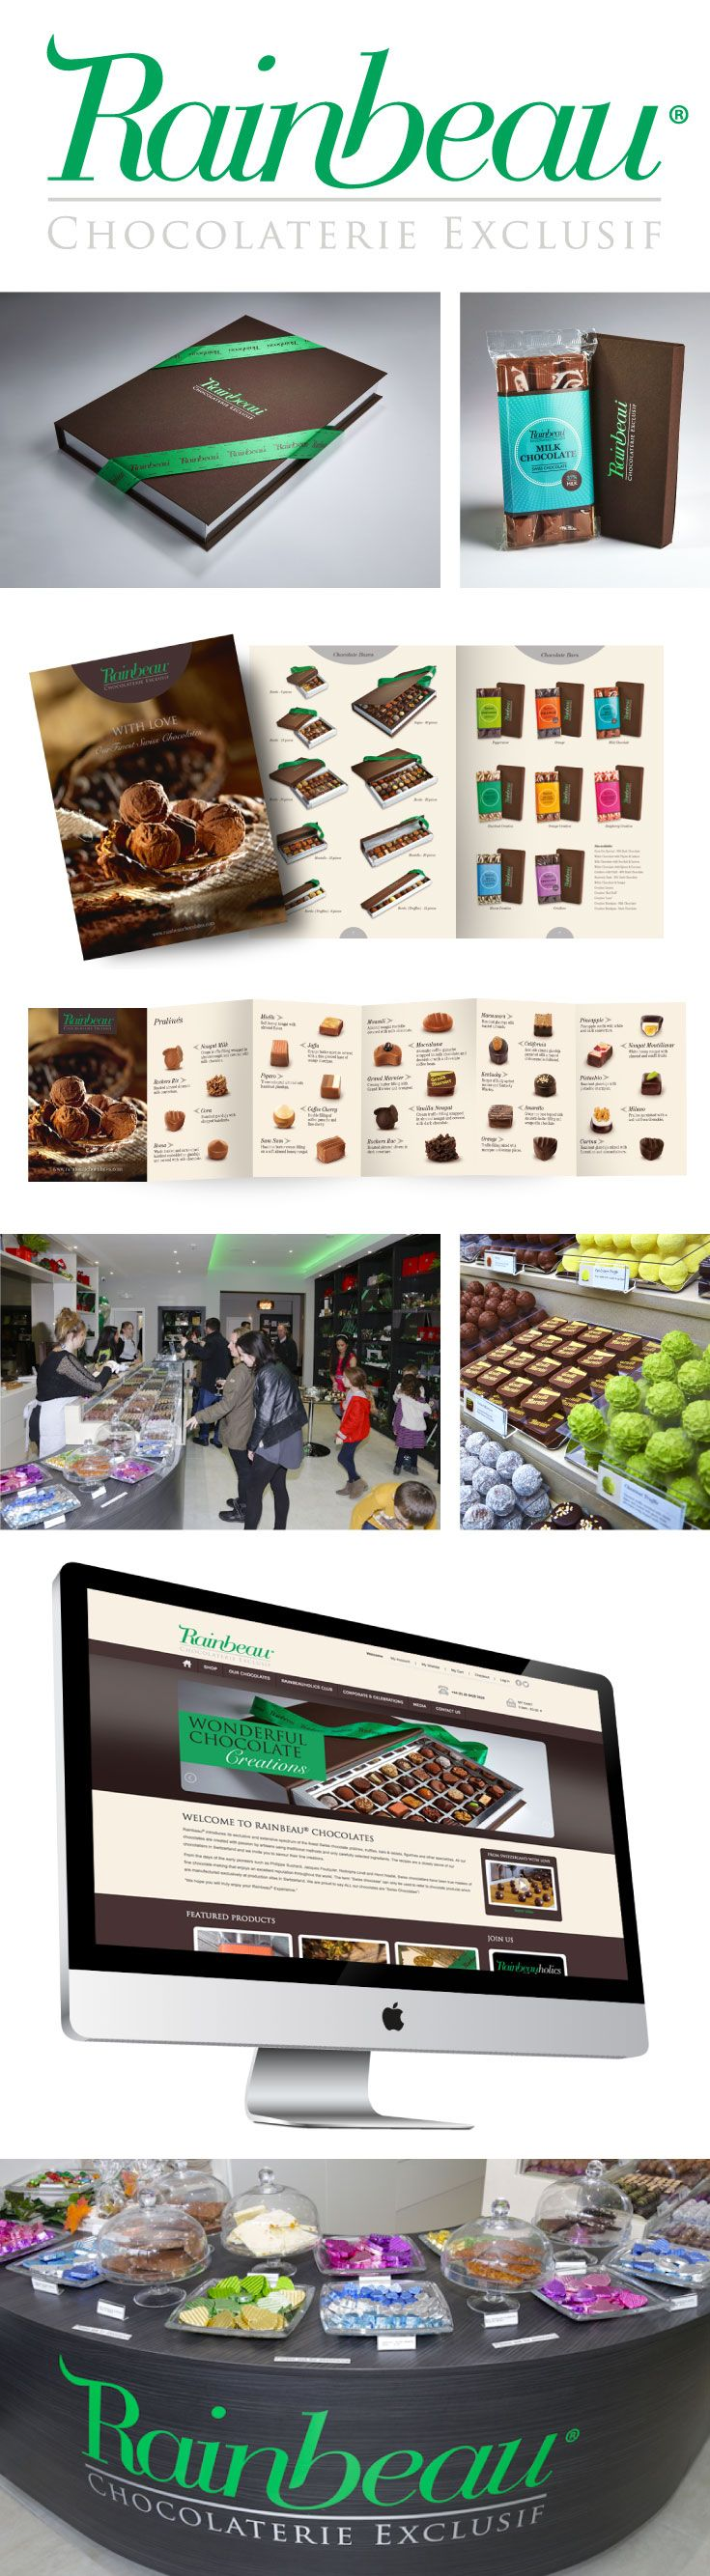 Luxury branding for exclusive Swiss chocolates for the connoisseur, to be sold on line and through the Rainbeau.